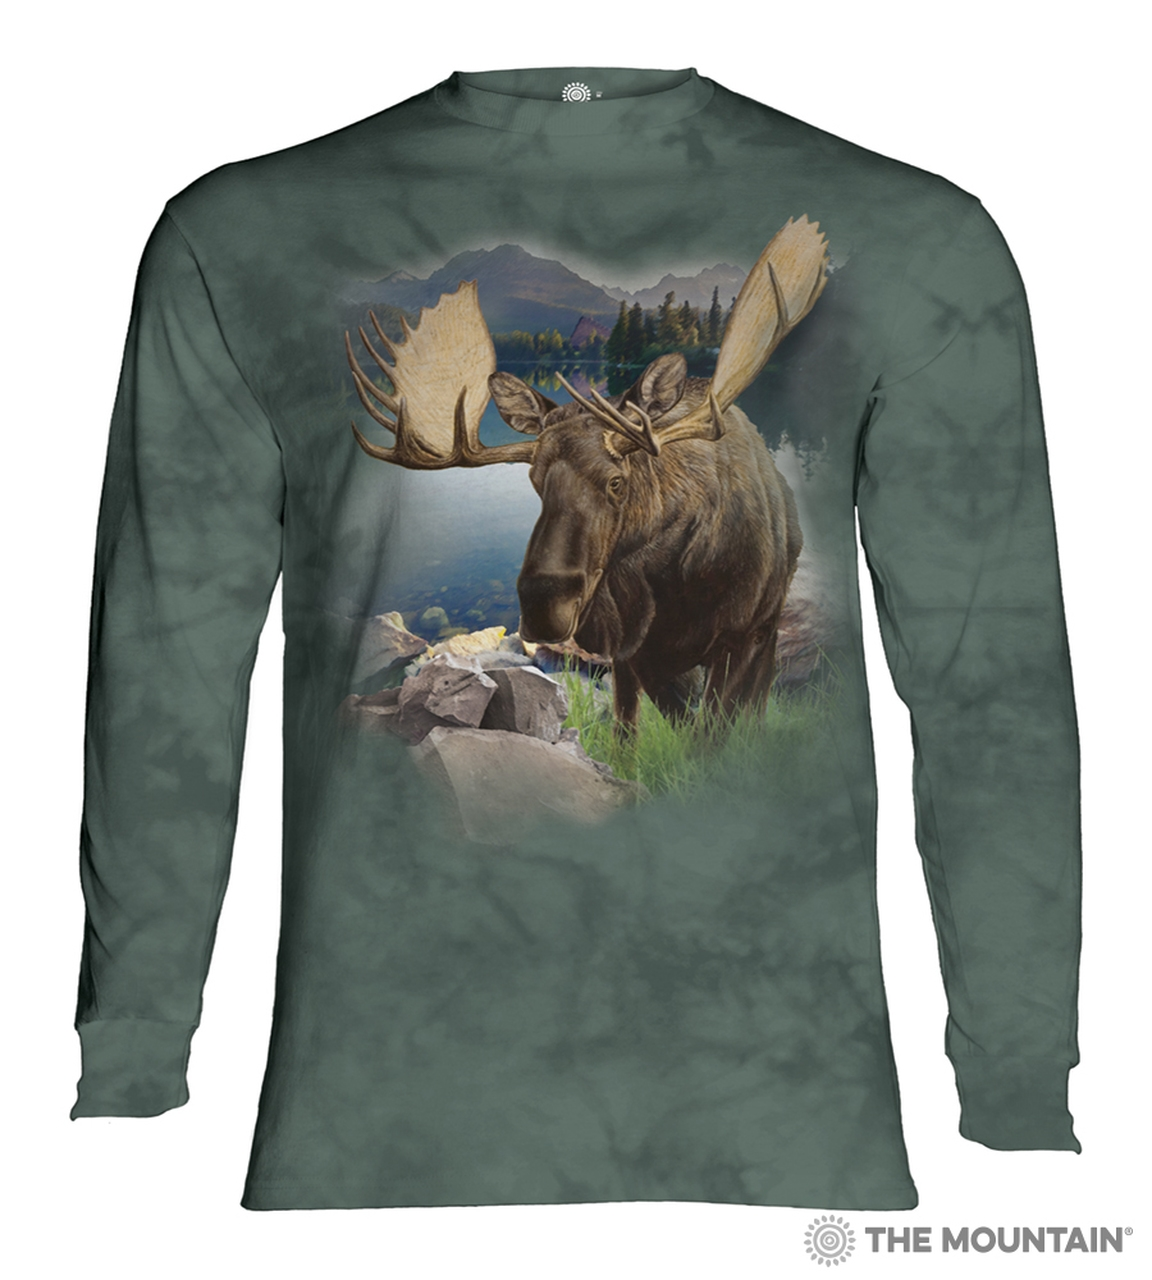 Monarch Of The Forest - 45-6168 - Adult Long Sleeve T-shirt